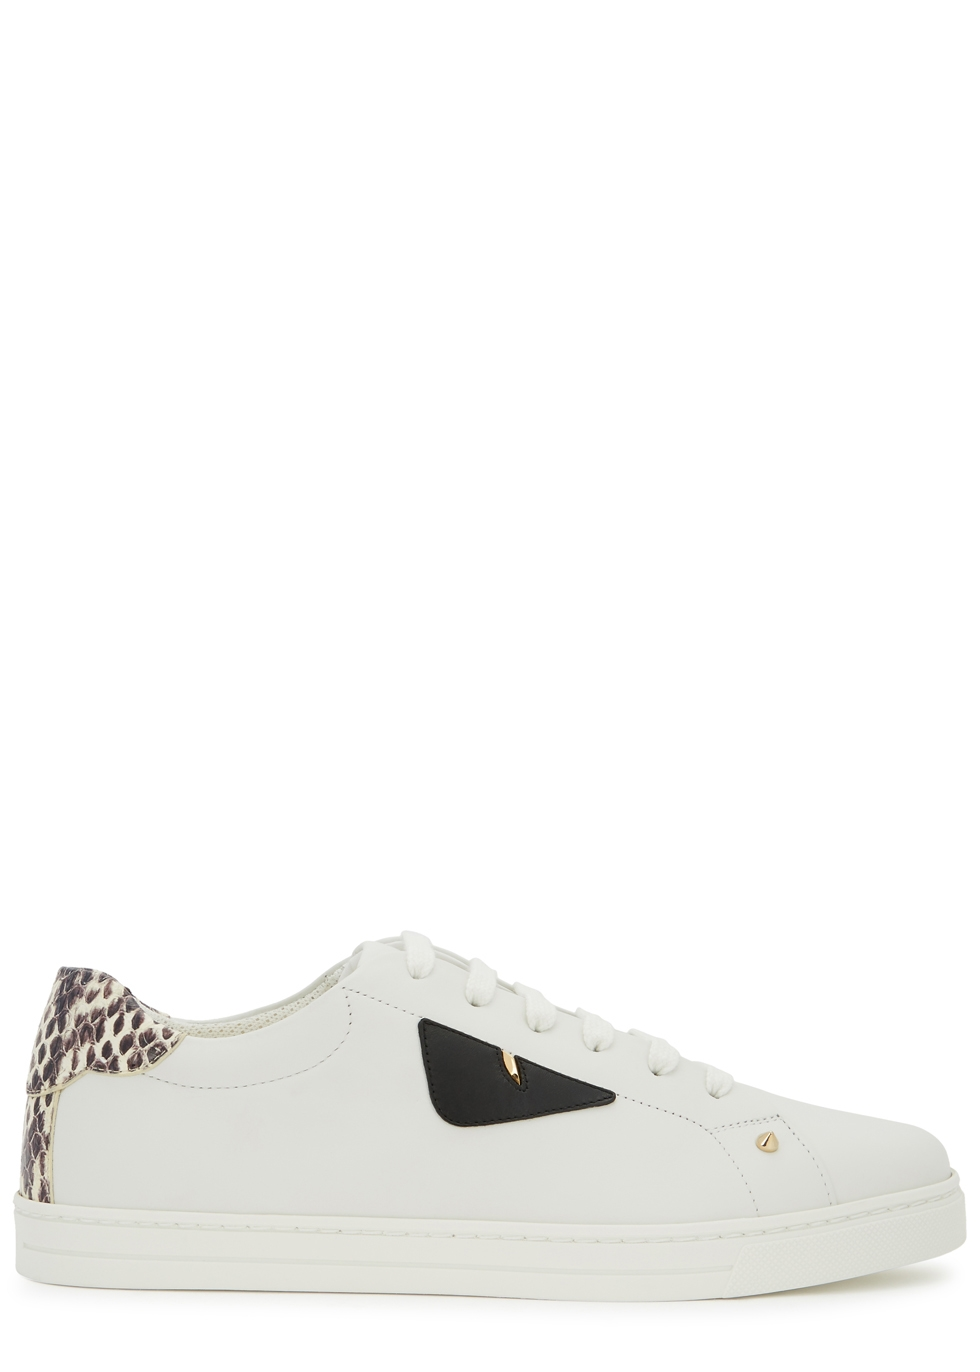 Monster White Leather Trainers, White/ Snakeprint